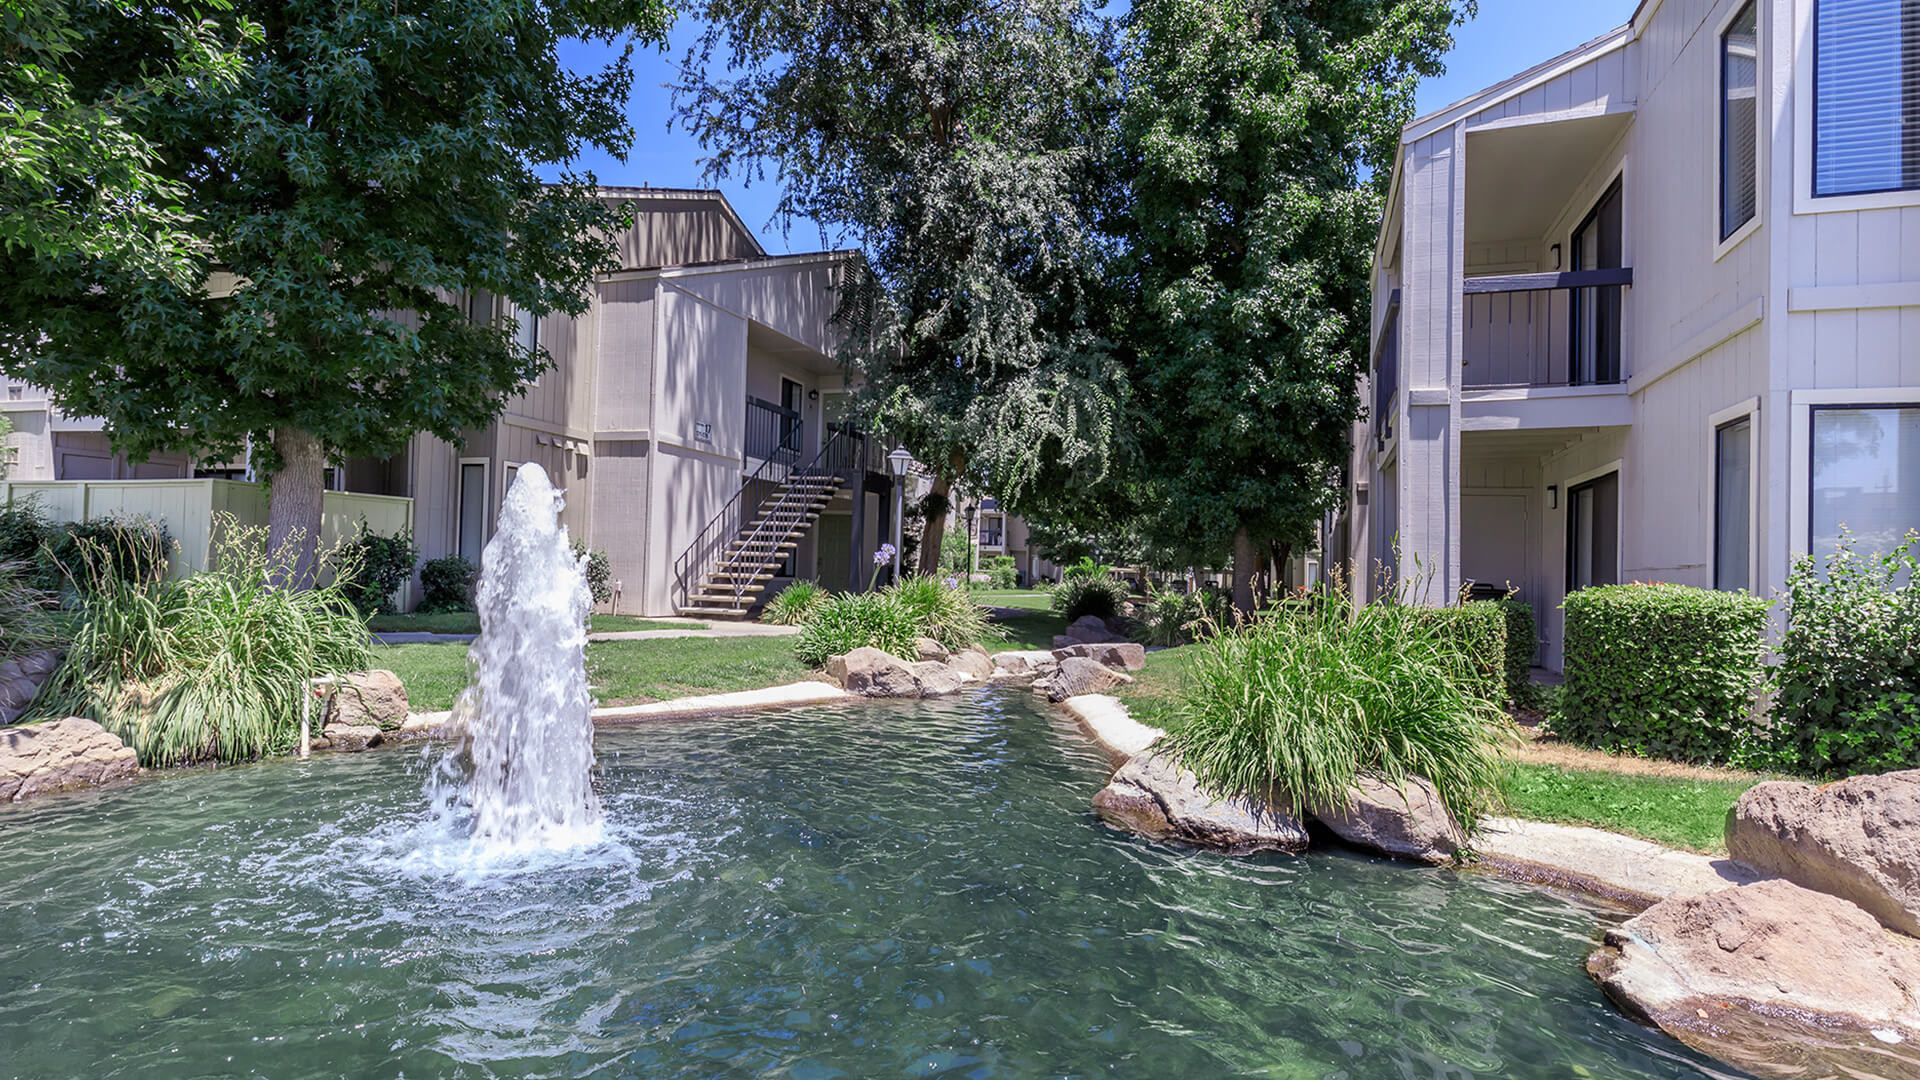 2 Bedroom Apartments In Bakersfield Ca - Search your ...